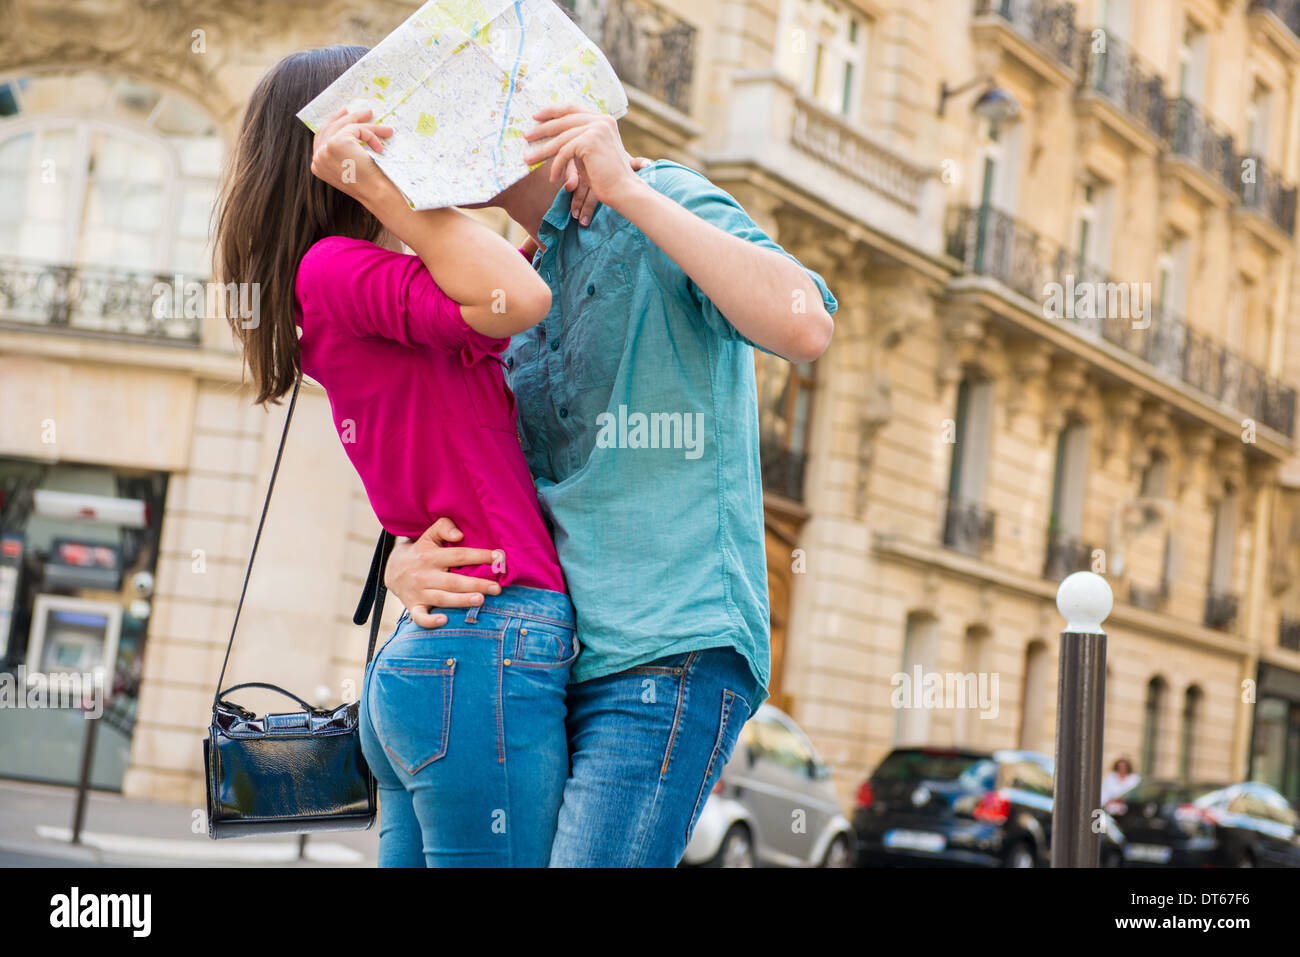 Young couple hiding behind map, Paris, France - Stock Image